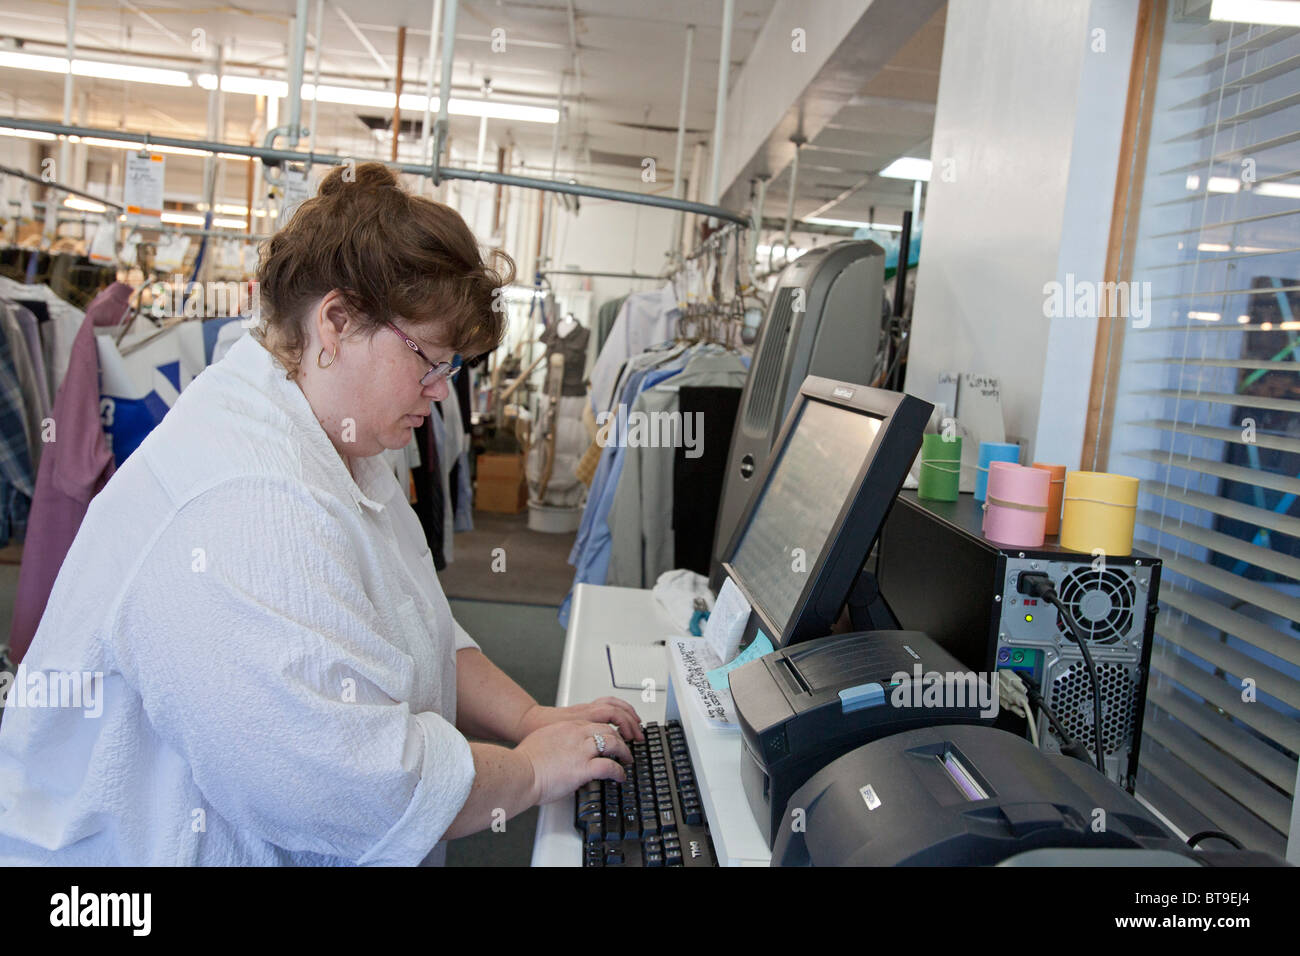 Worker Enters Data on Computer at Dry Cleaning Firm - Stock Image